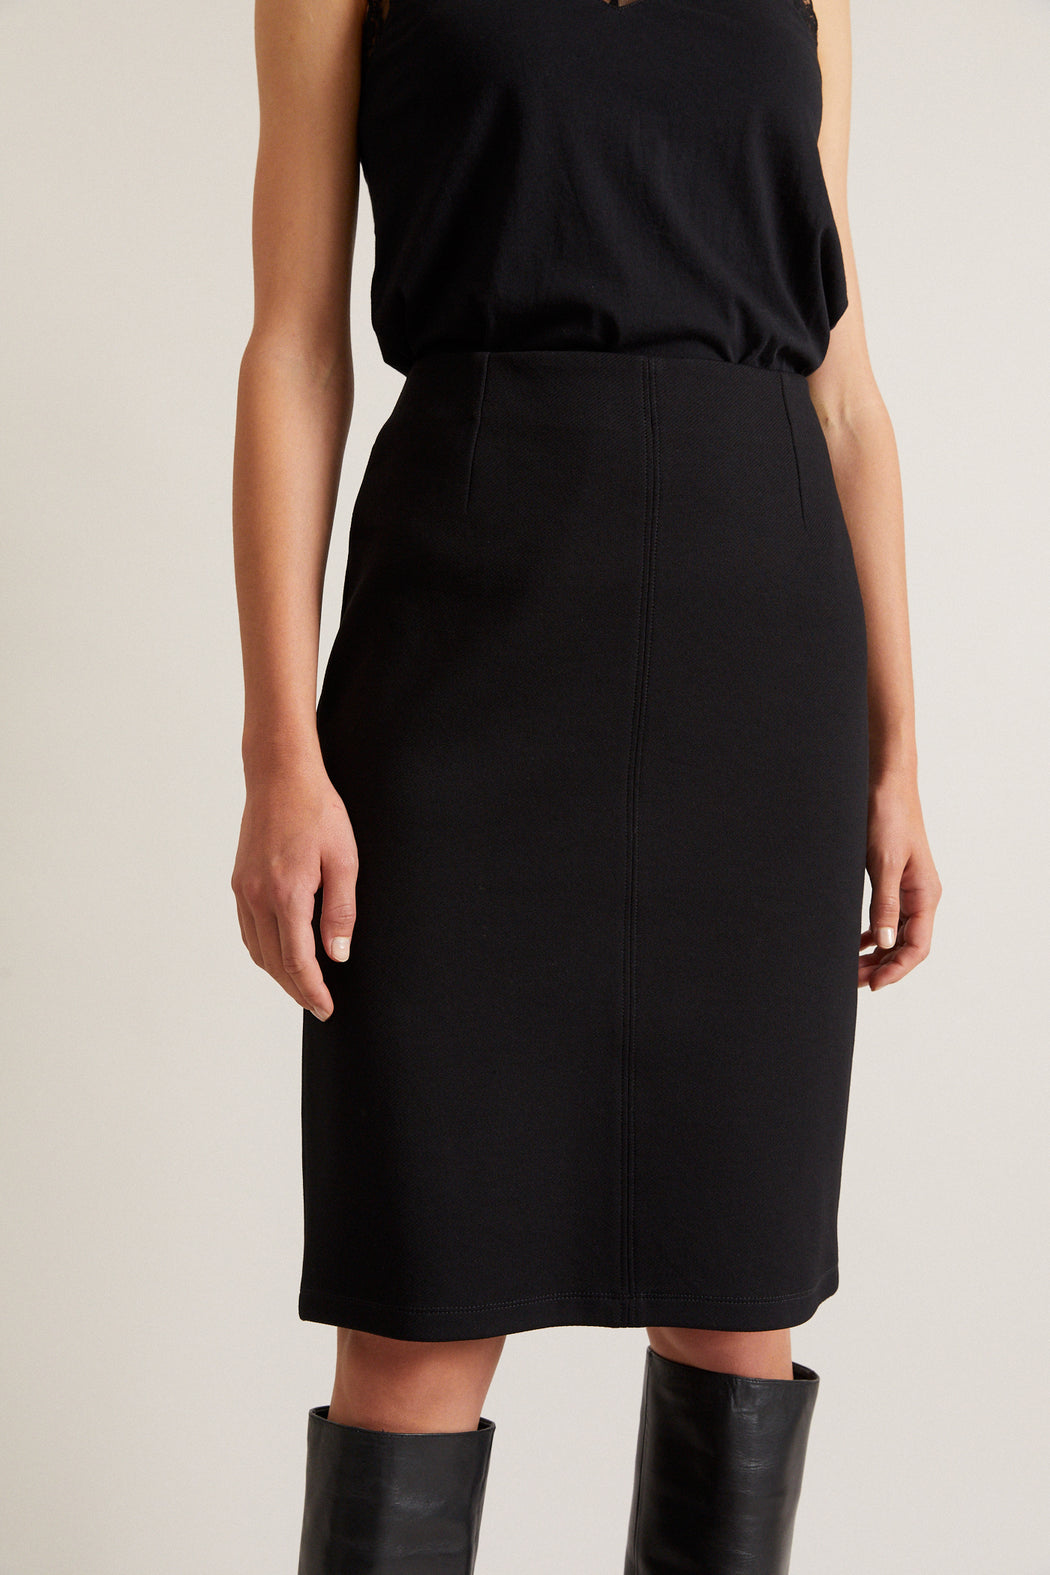 LANIUS pencil skirt black